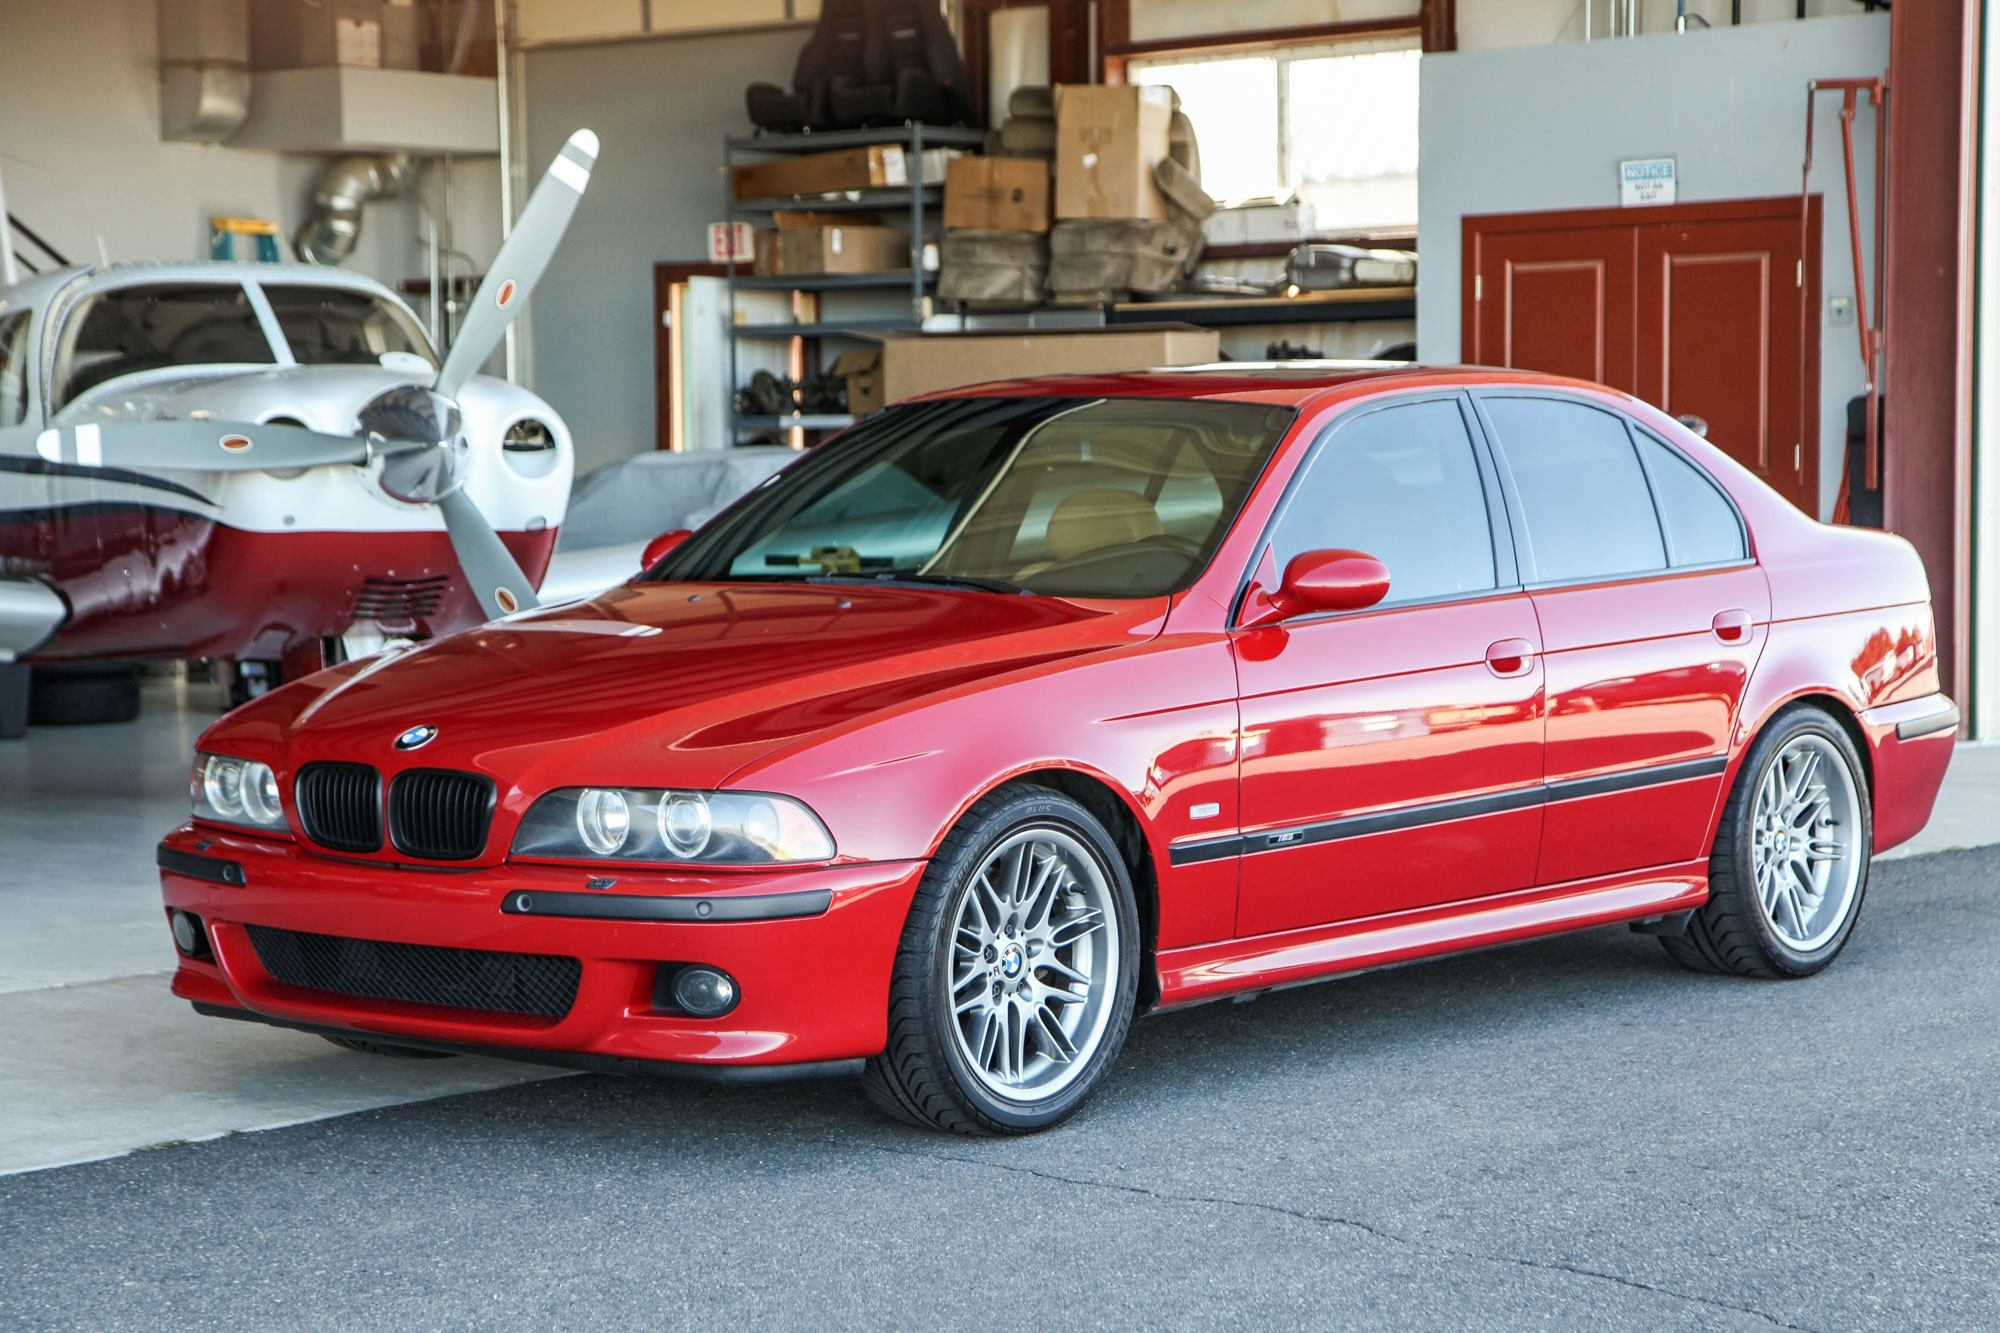 BMW E39 M5 >> 2003 Bmw E39 M5 Glen Shelly Auto Brokers Denver Colorado